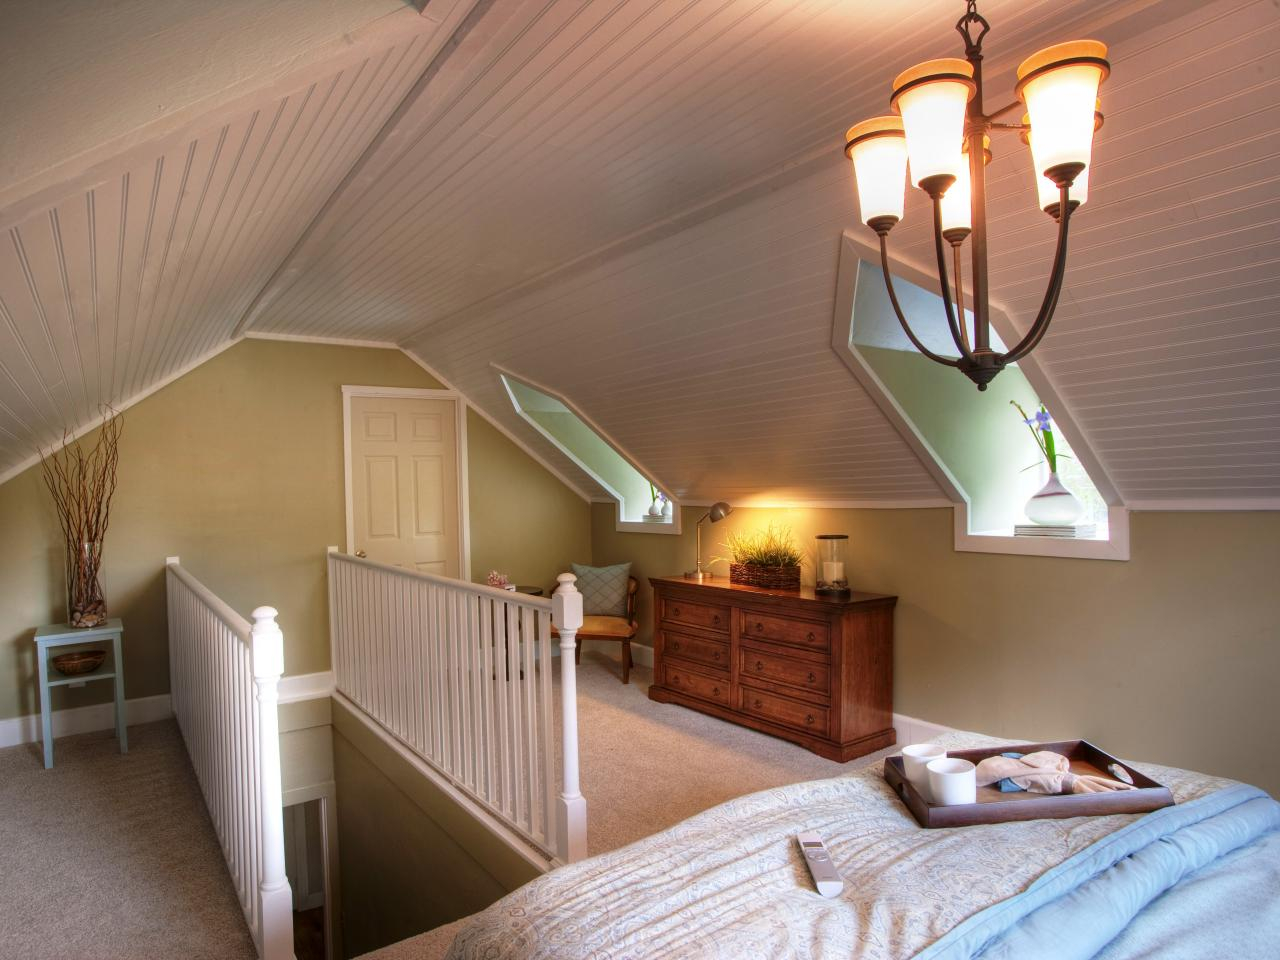 Attic Space Ideas Remodeling Attic With Low Ceiling Attic Ideas